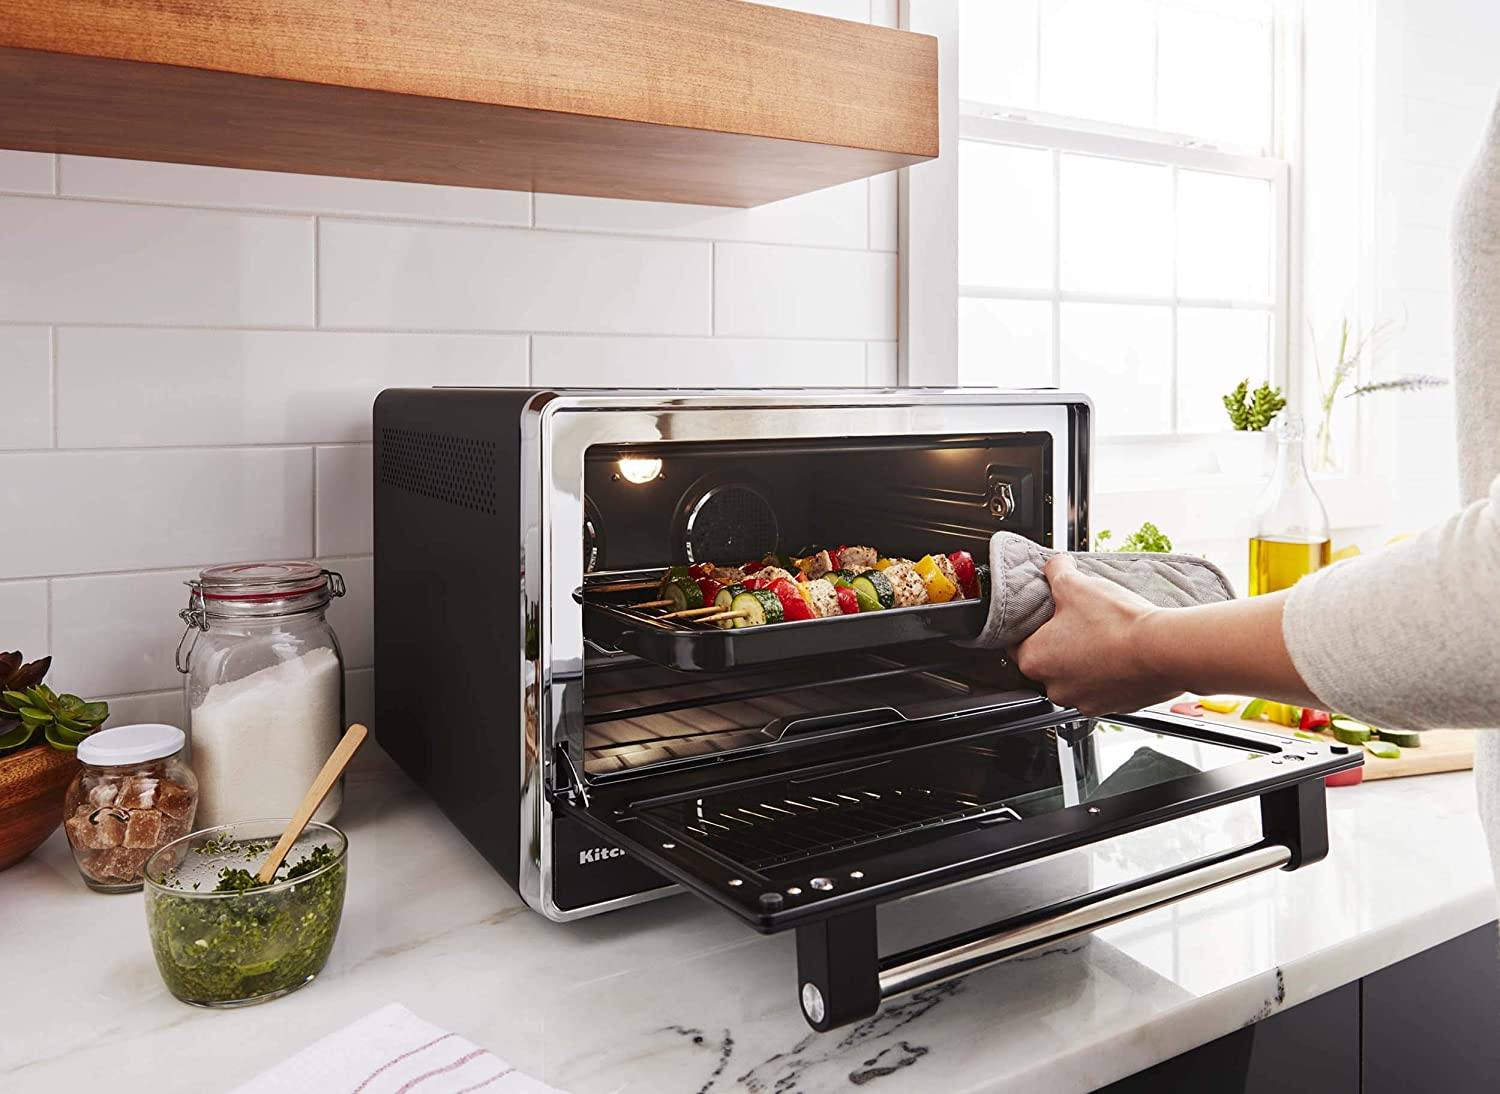 KitchenAid KCO255BM Dual Convection Countertop Toaster Oven in kitchen